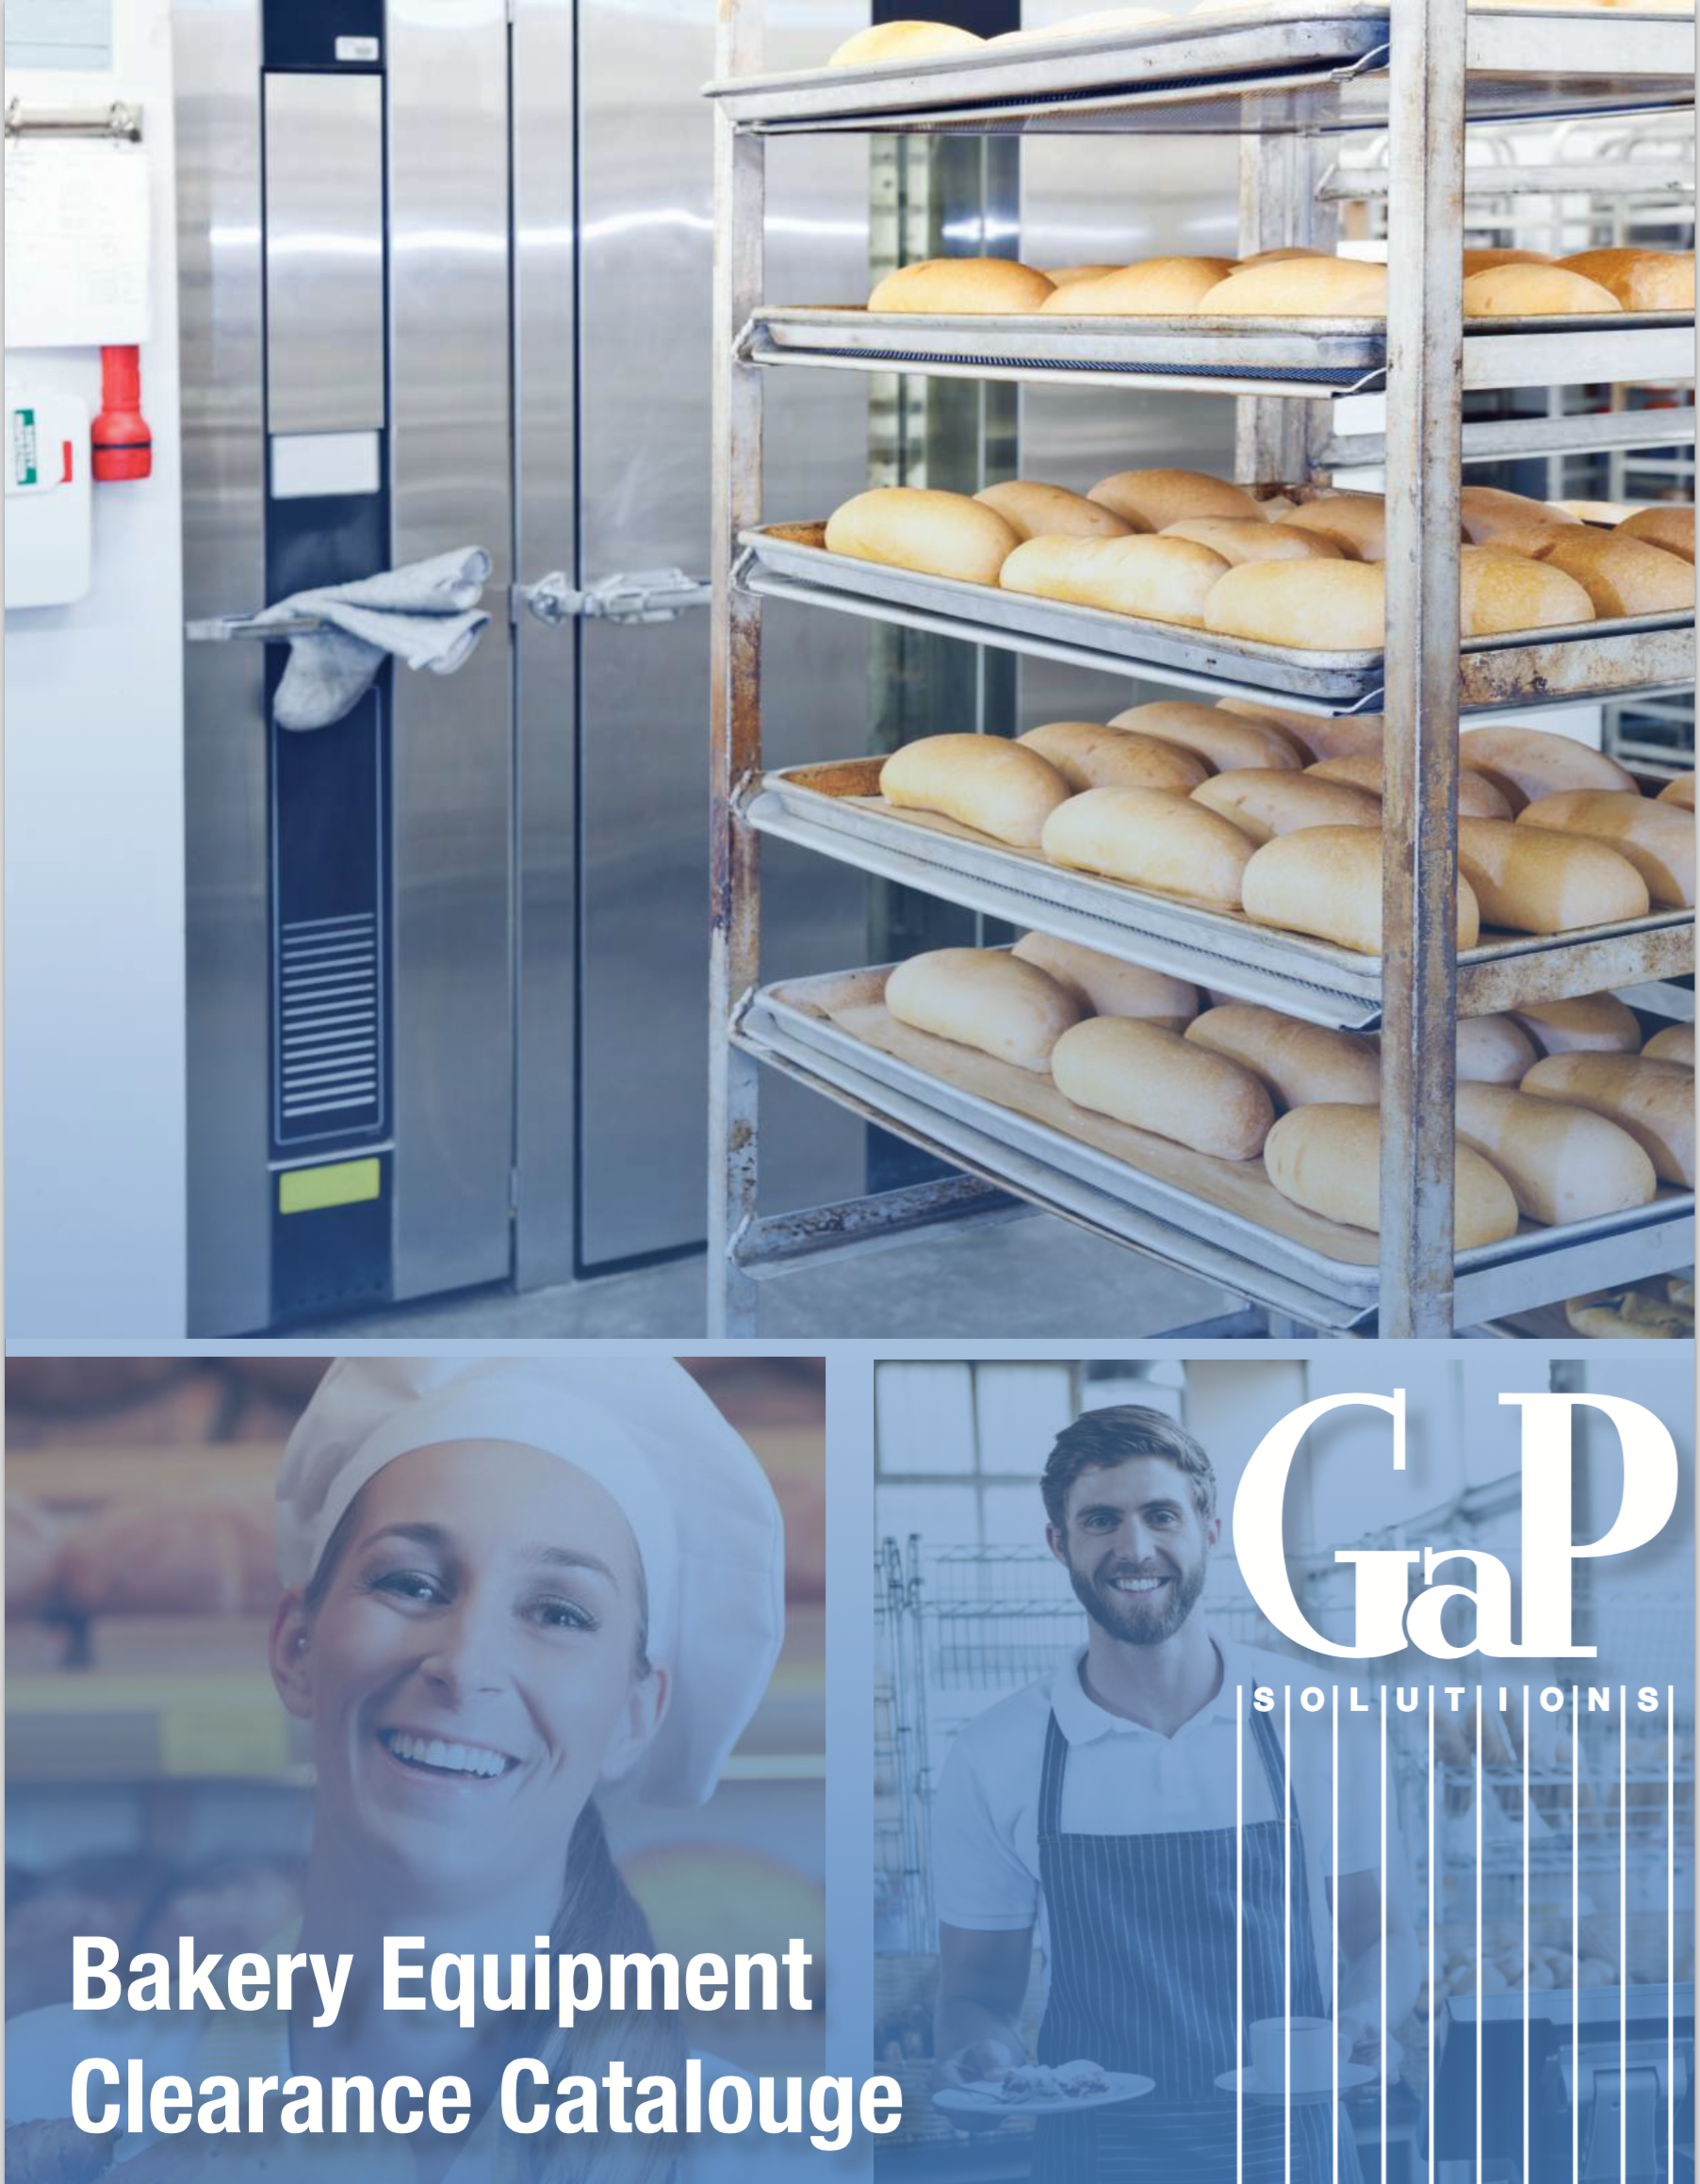 Clearance Baking Equipment | GaP Solutions